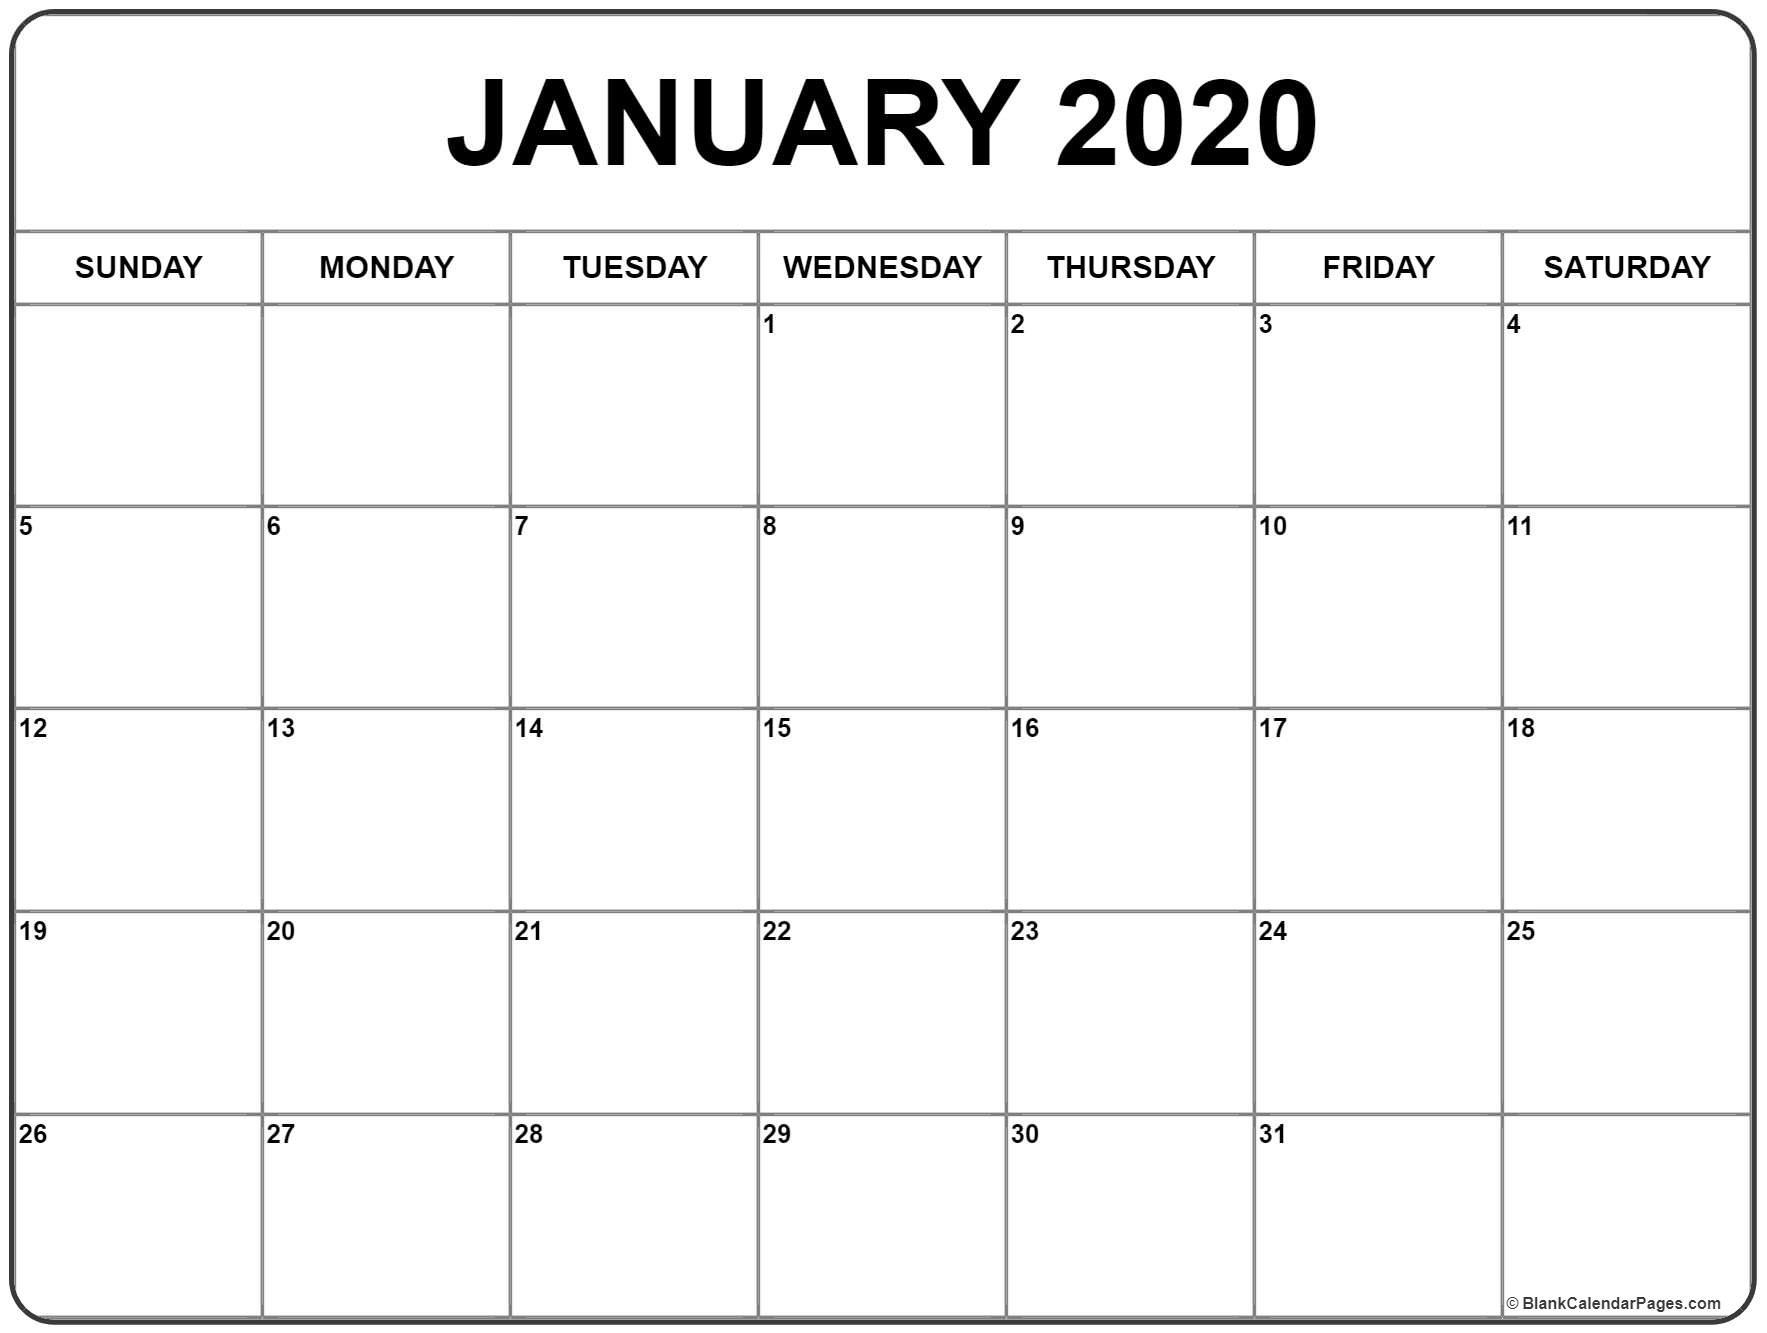 Best Free Printable Monthly Calendar January 2020 * Calendar-Las Vegas Event Calendar January 2020